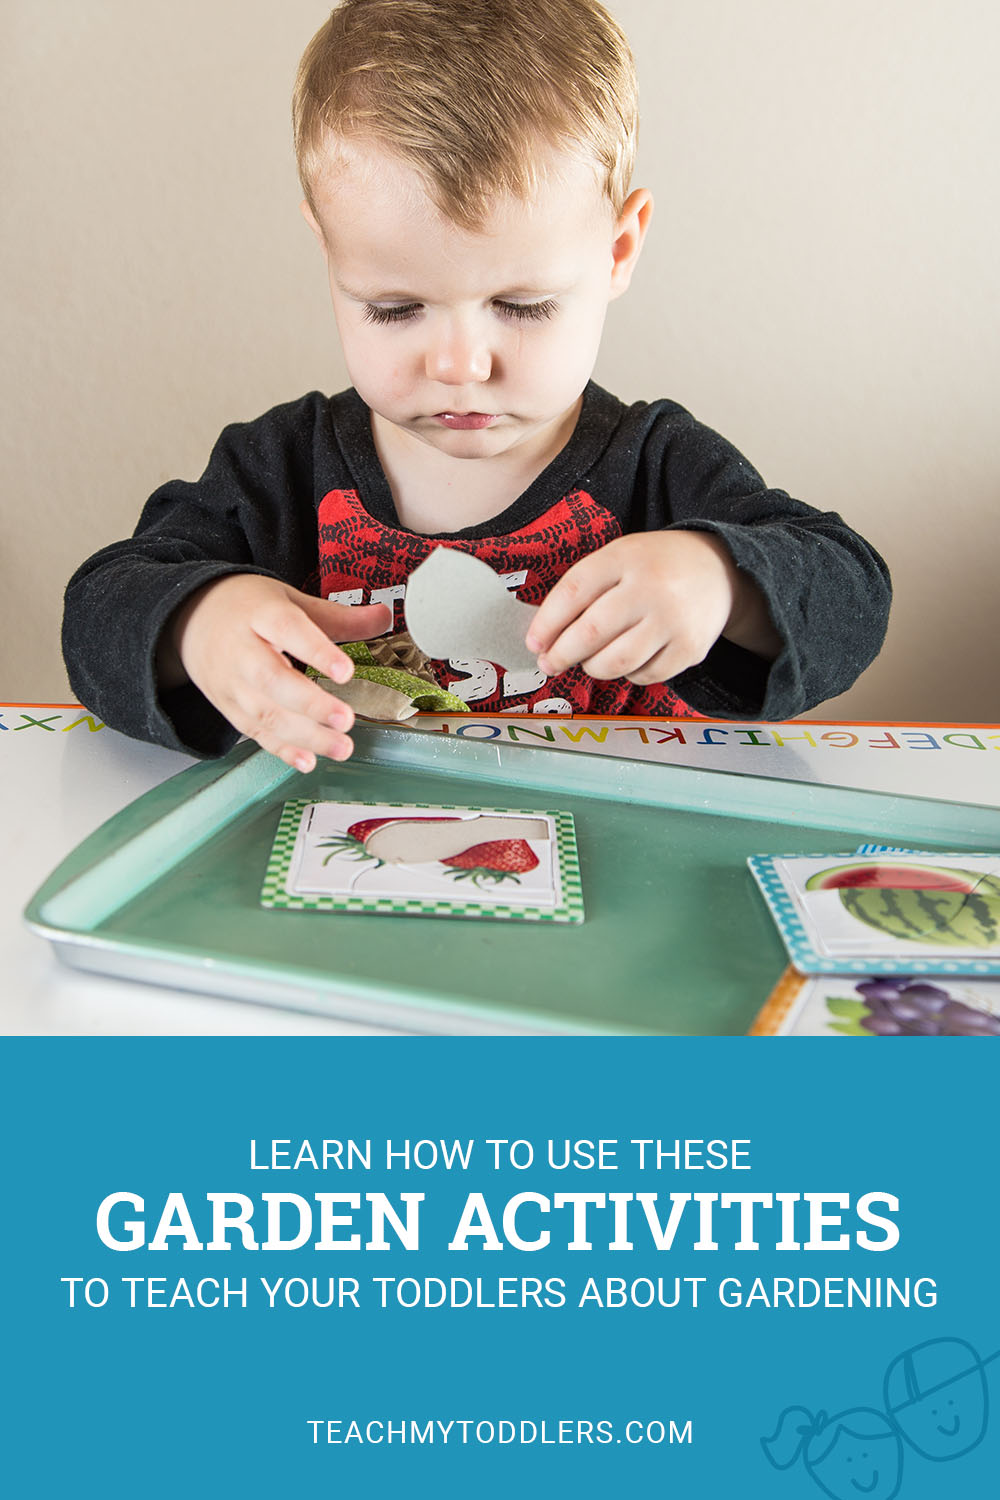 Learn how to use these garden activities to teach toddlers about gardening